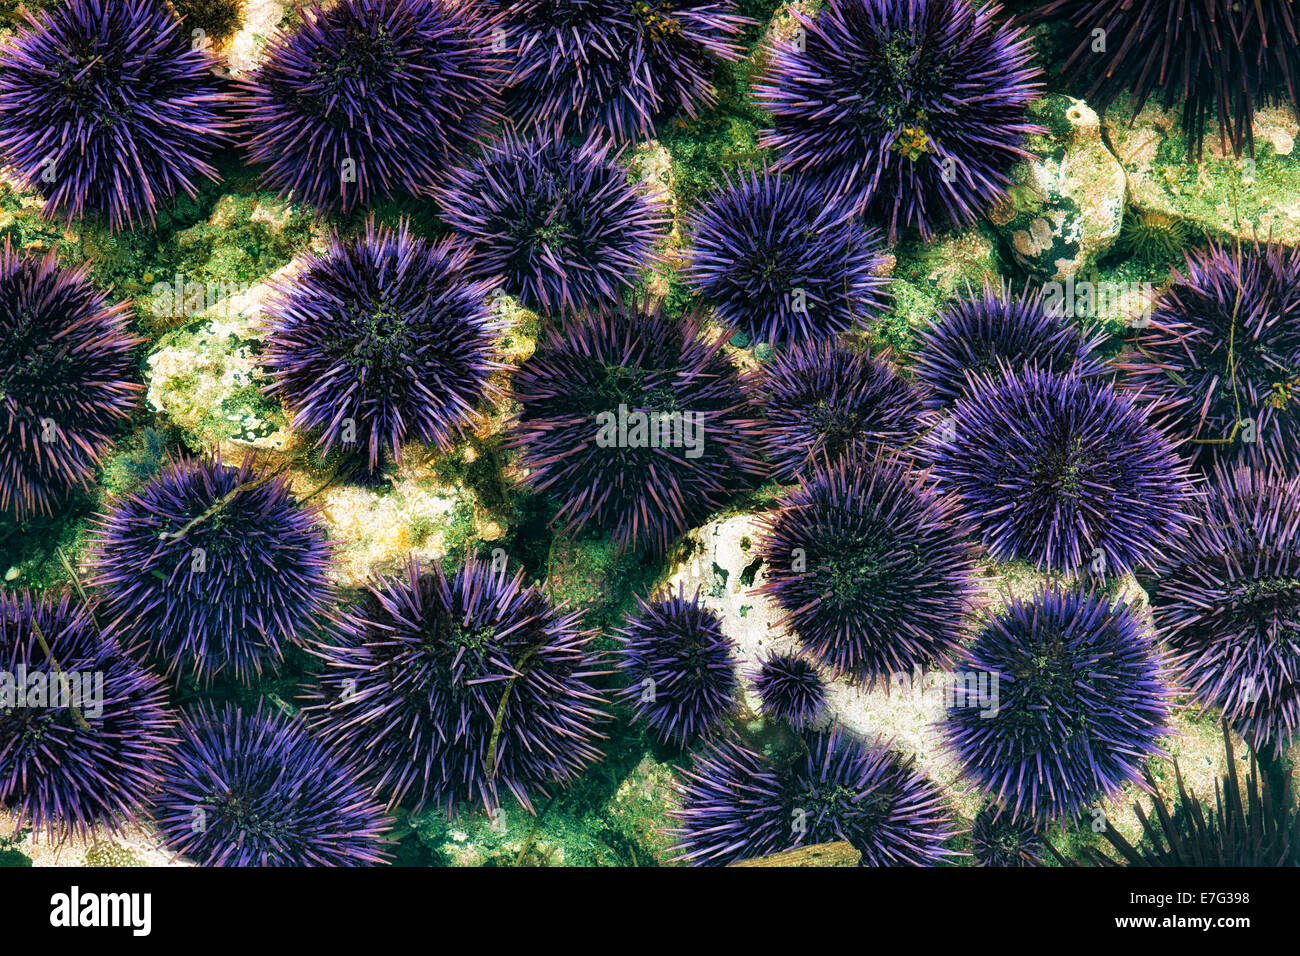 Minus low tide reveals this gallery of purple sea urchins among the tide pools at Yaquina Head on Oregon's central - Stock Image